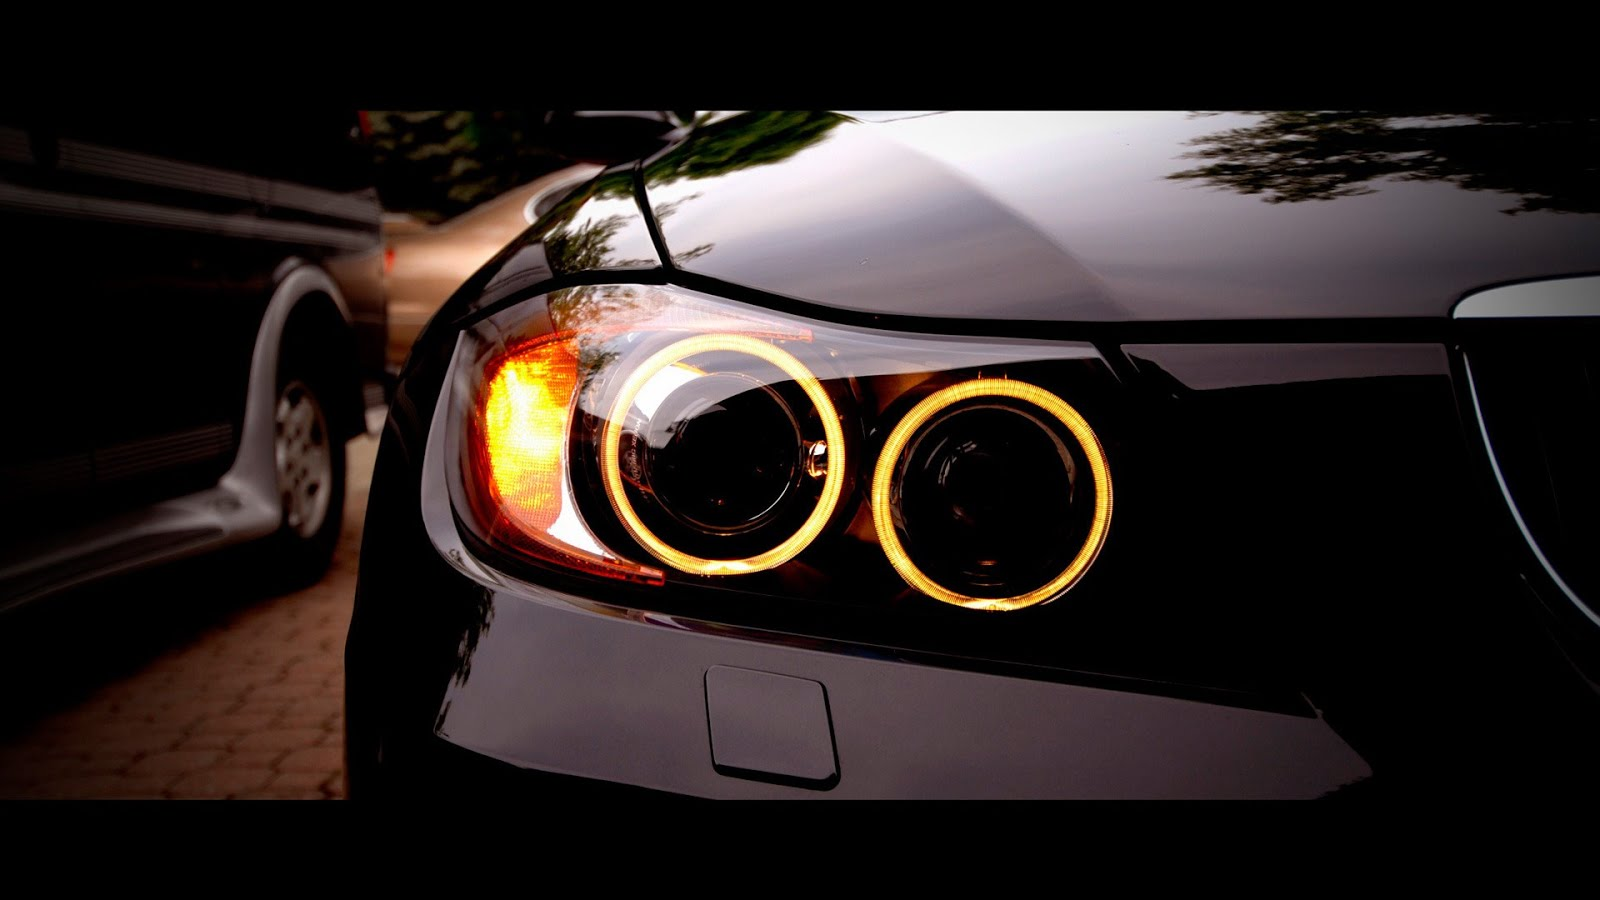 bmw car wallpapers high resolution | cars pics wallpapers